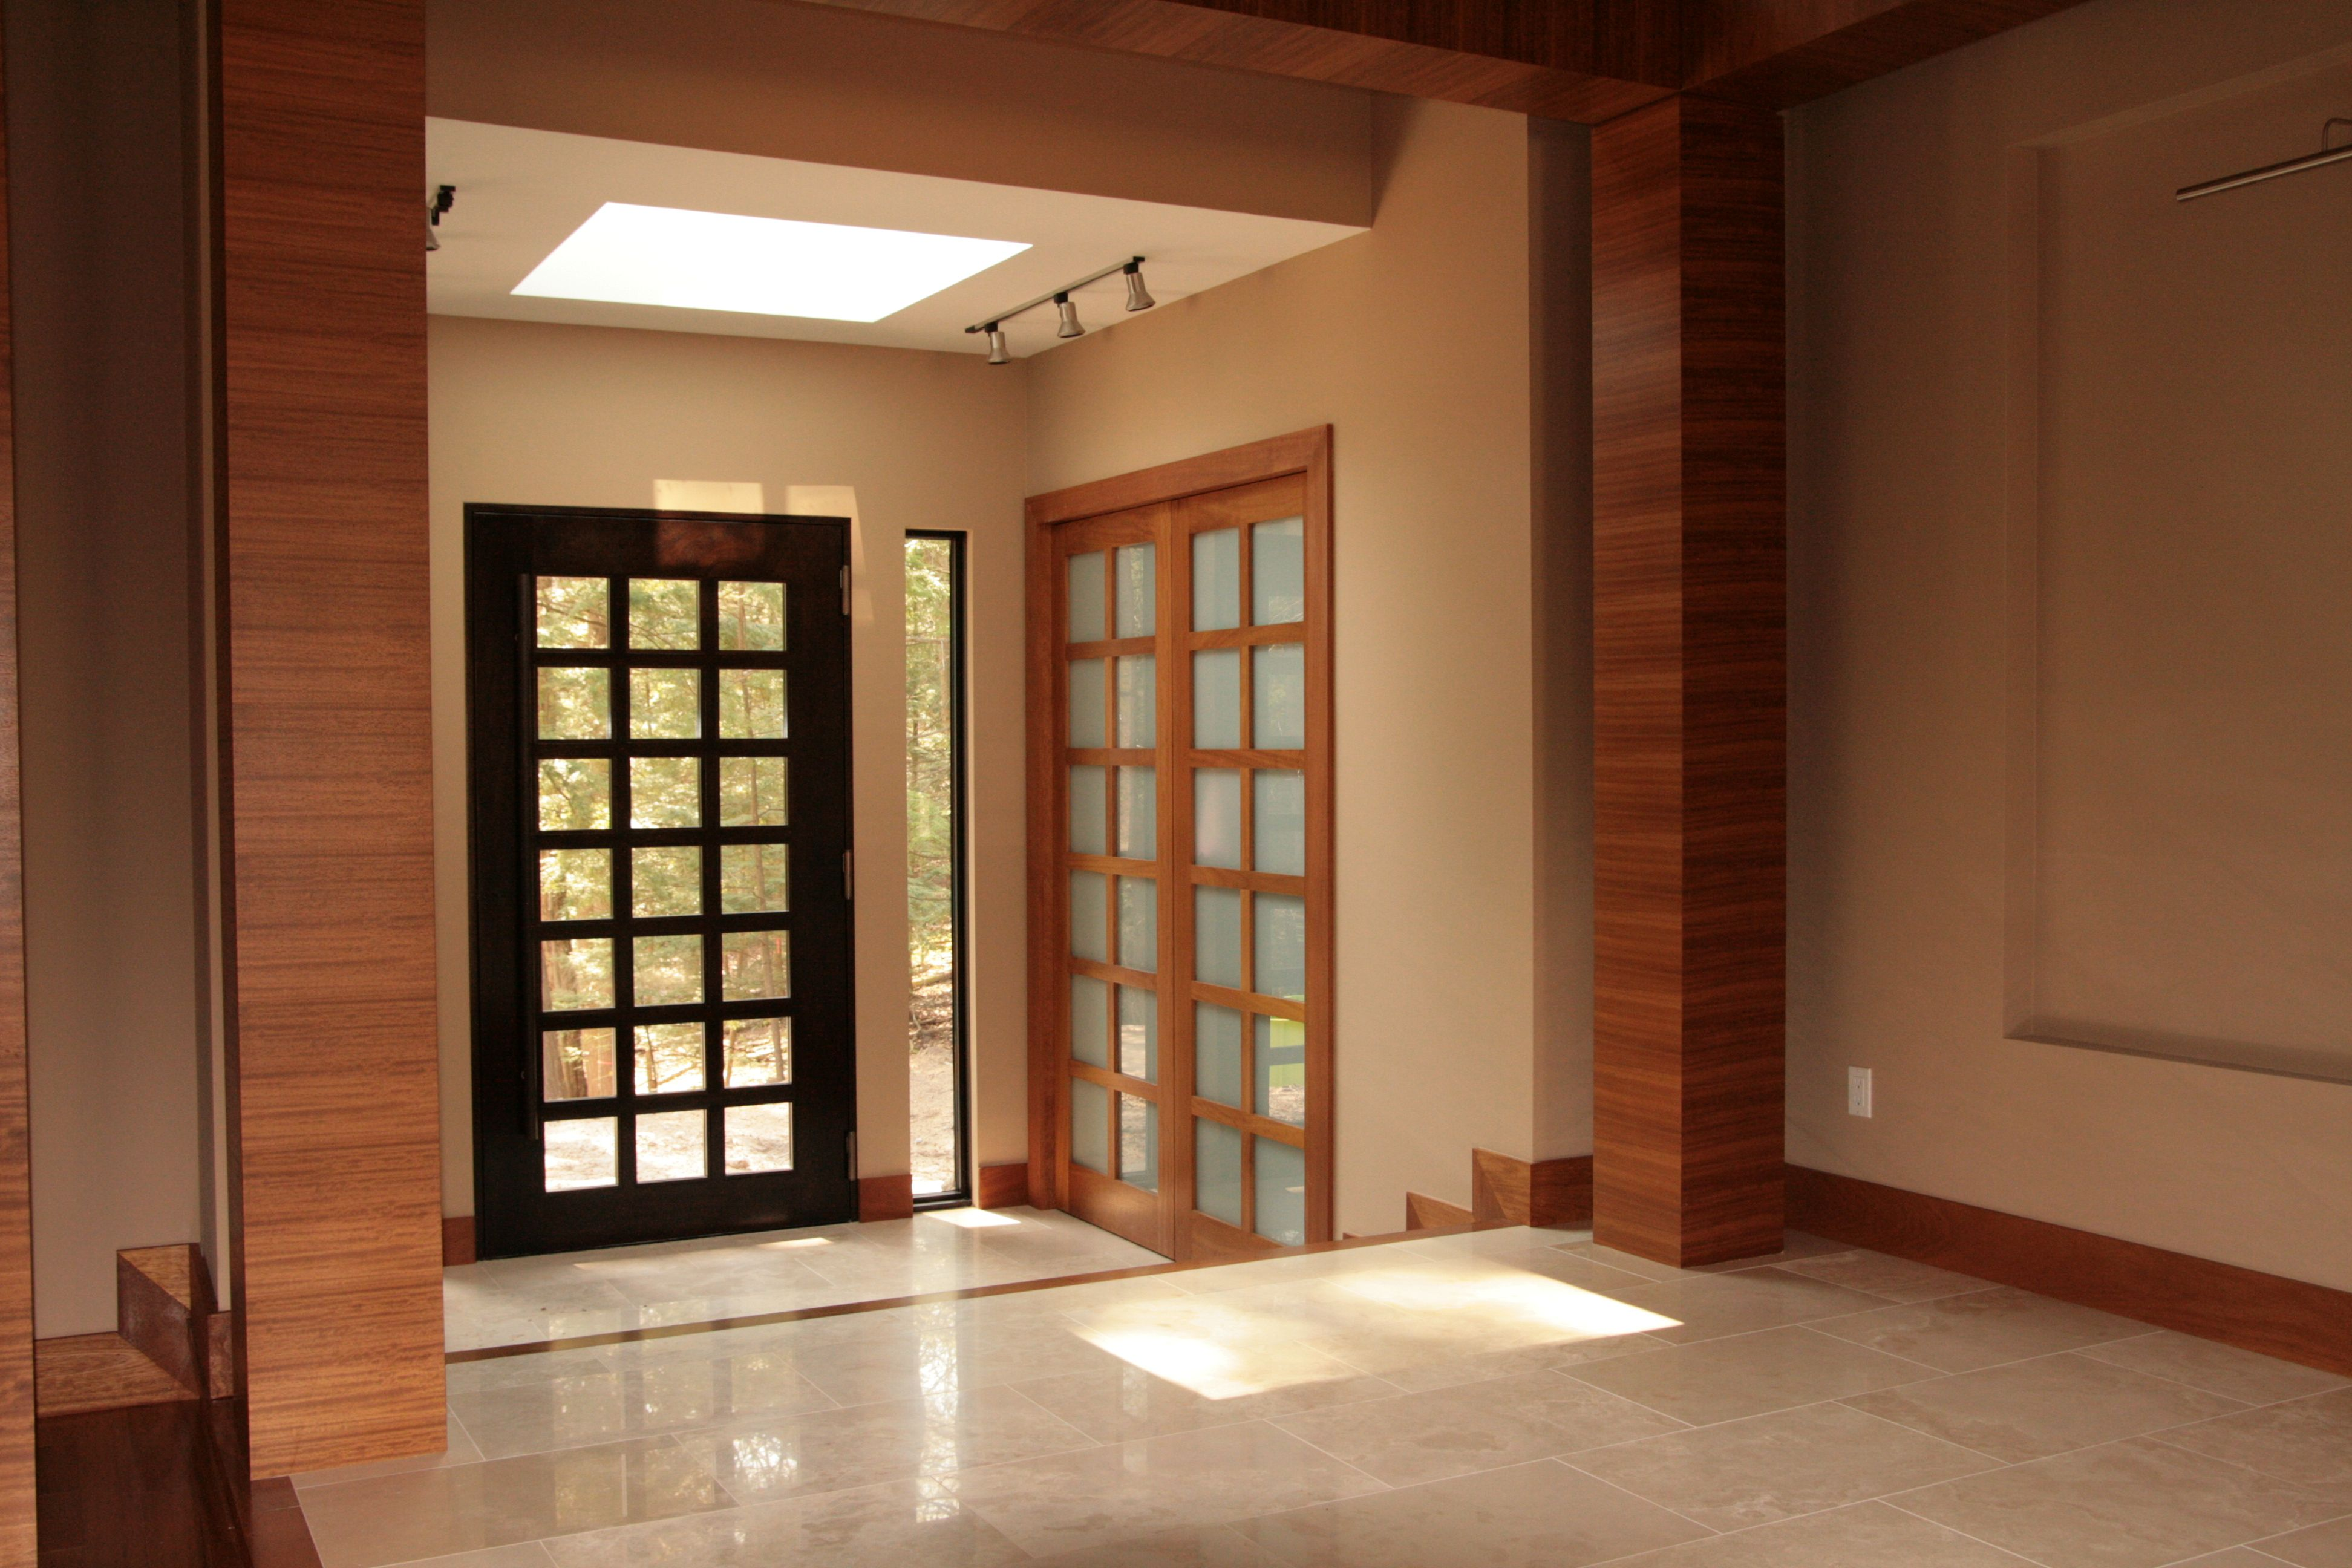 Great In This Photo This Spectacular Modern Home Features Amberwood Doors  The Mahogany Entry Door Has Clear Glass While The Iroko Interior Double  Door Has ...